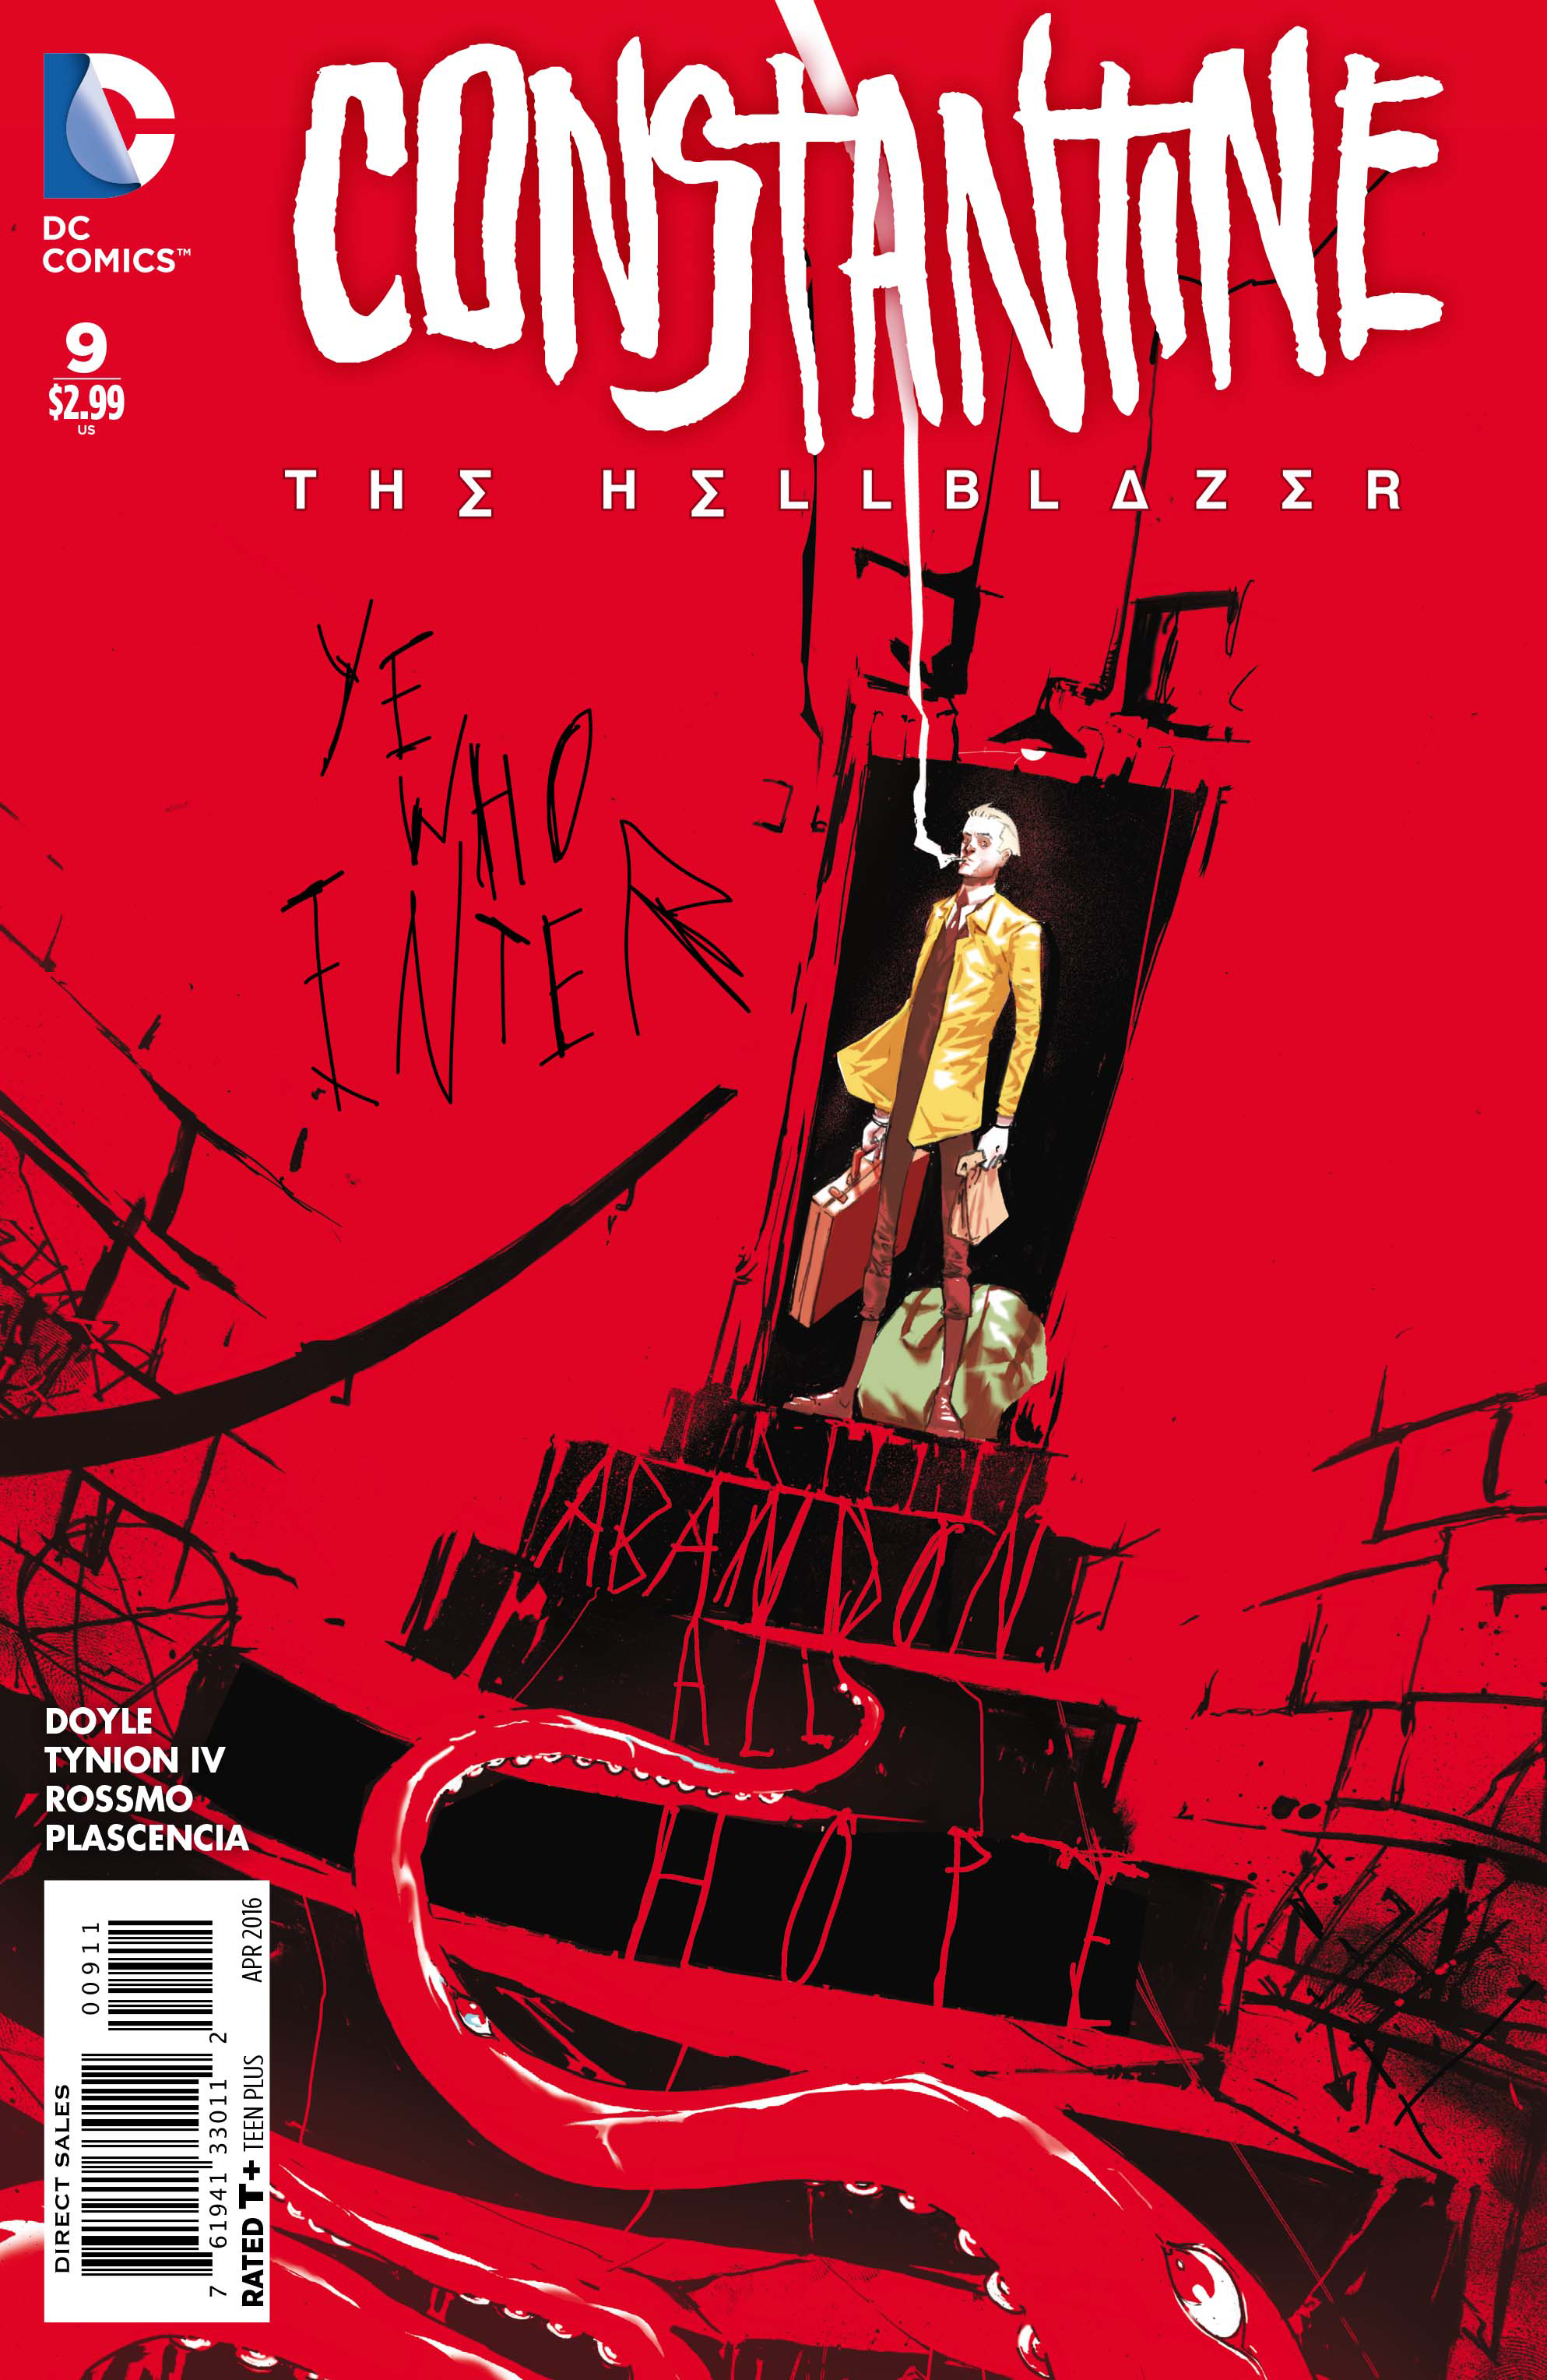 CONSTANTINE THE HELLBLAZER #9